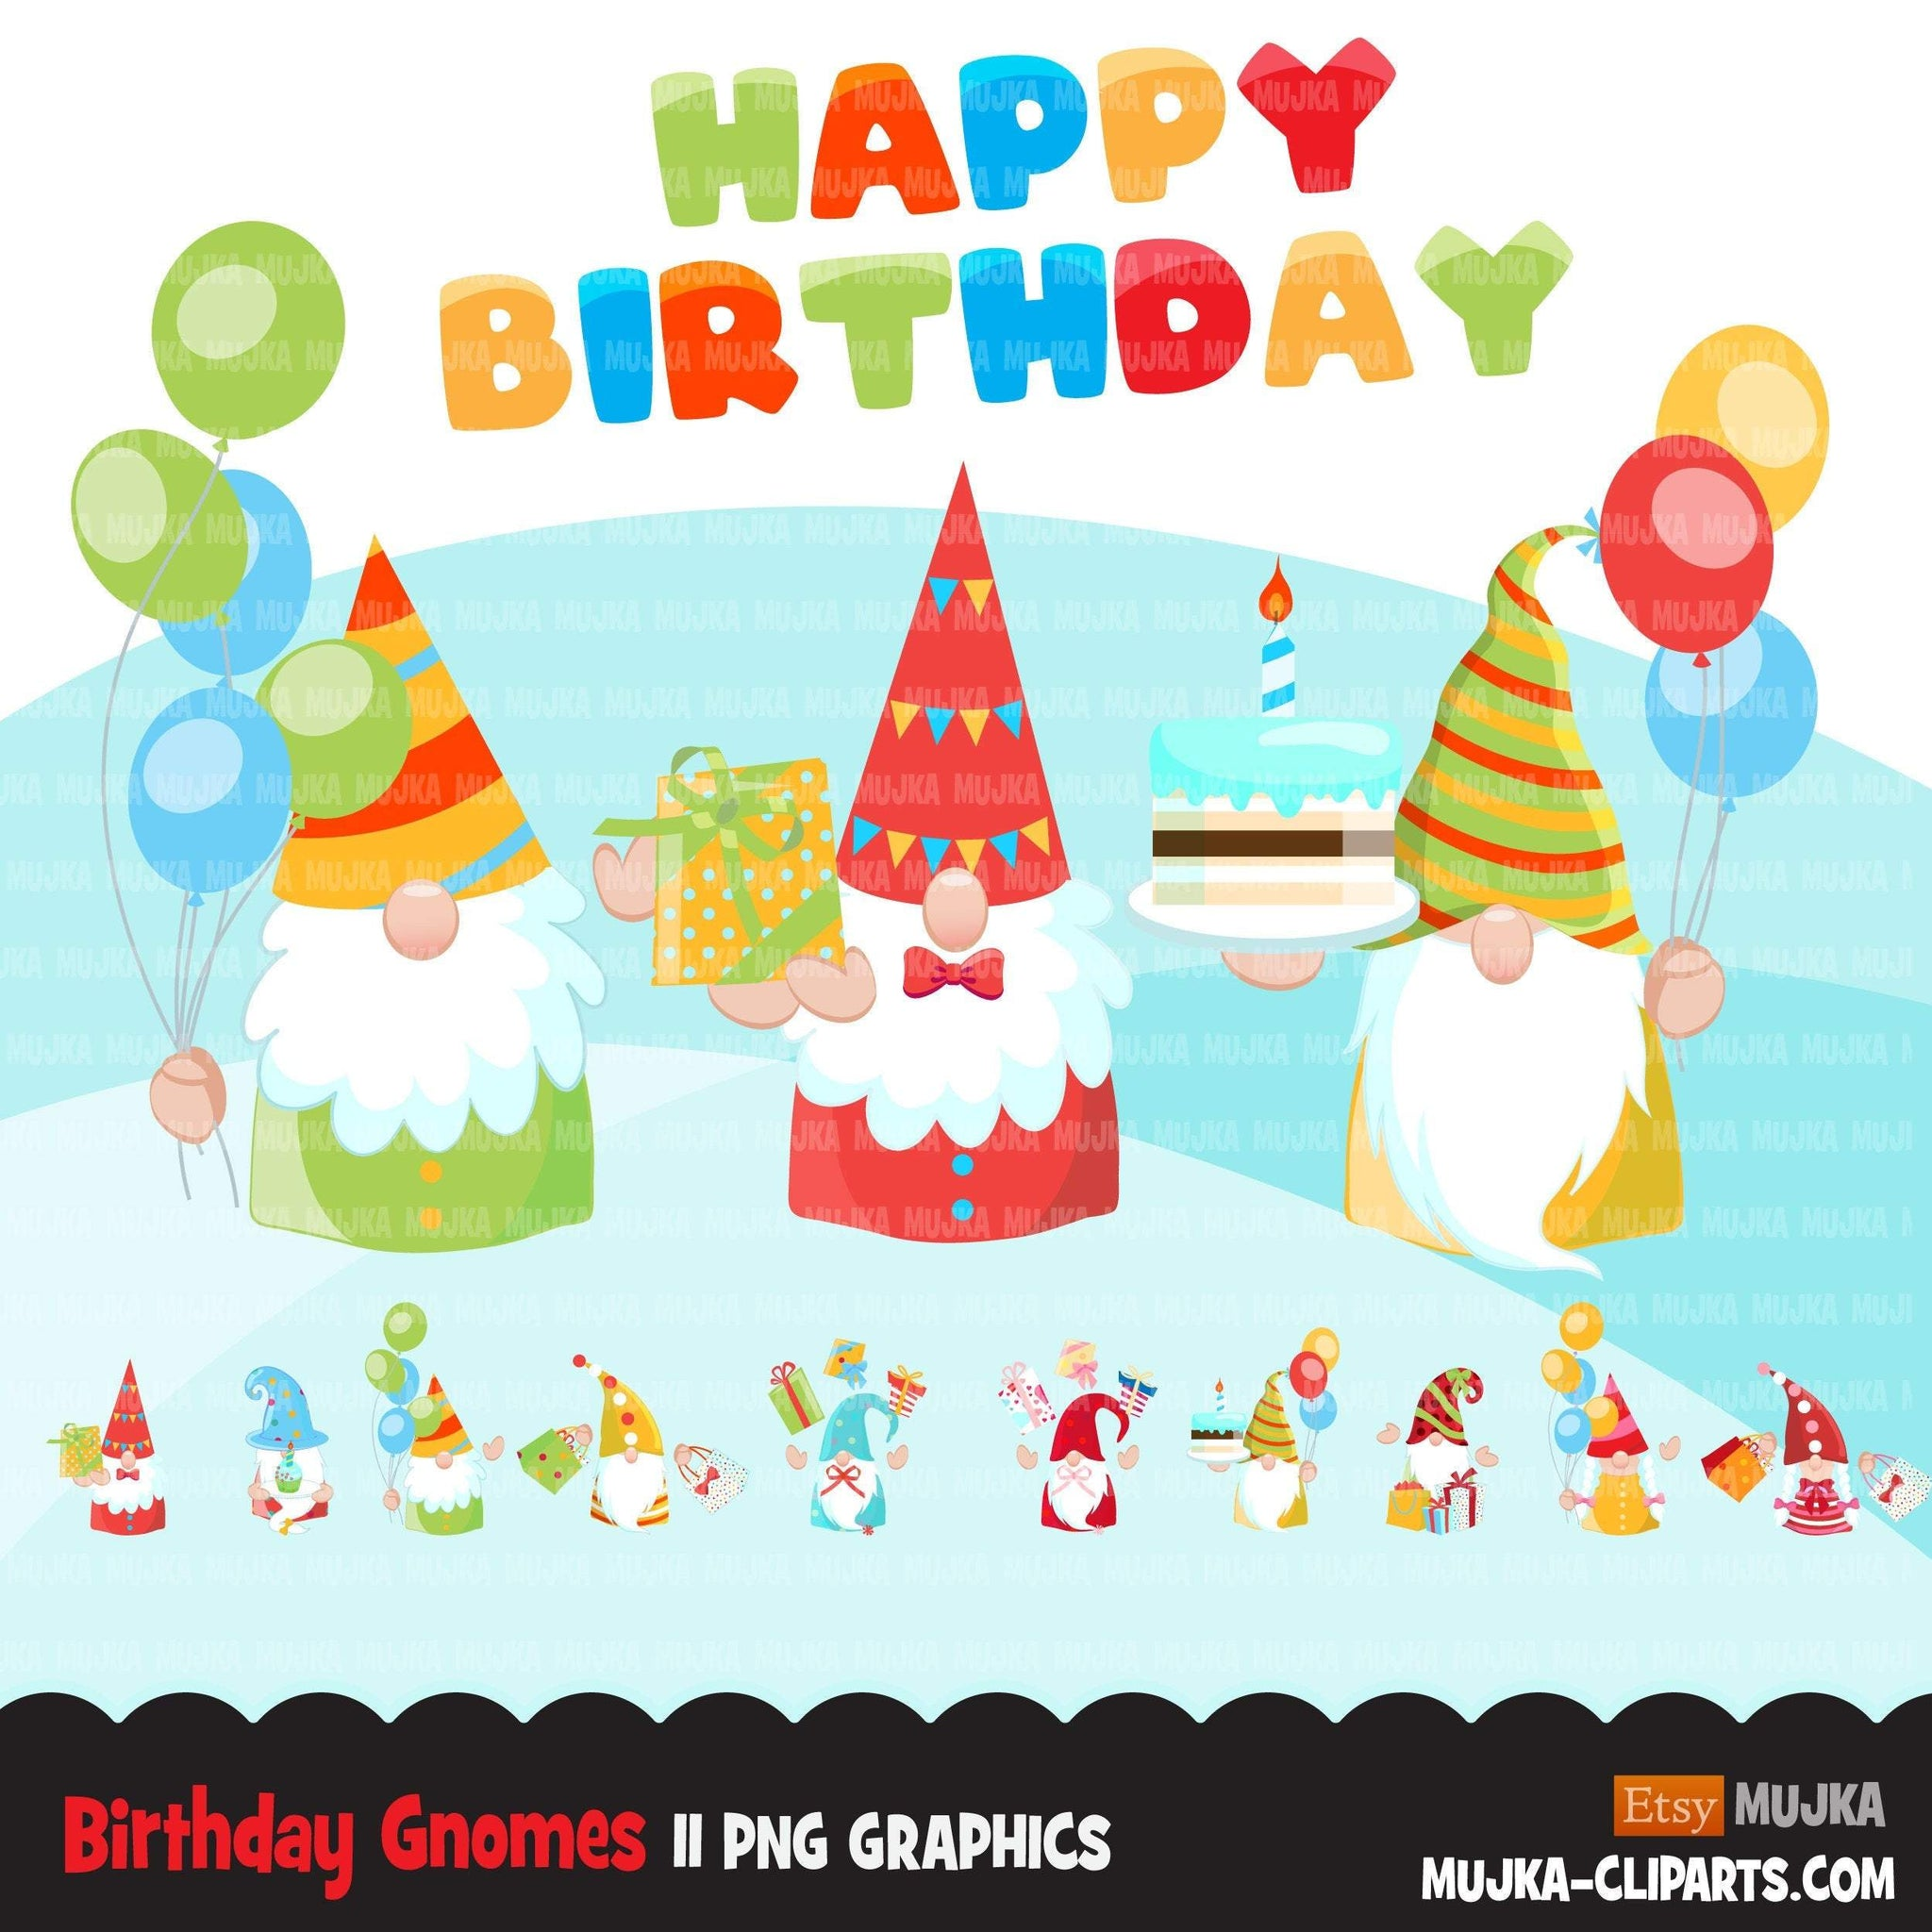 Birthday gnomes Clipart, birthday graphics, colorful party Gnome graphics, png digital sublimation designs